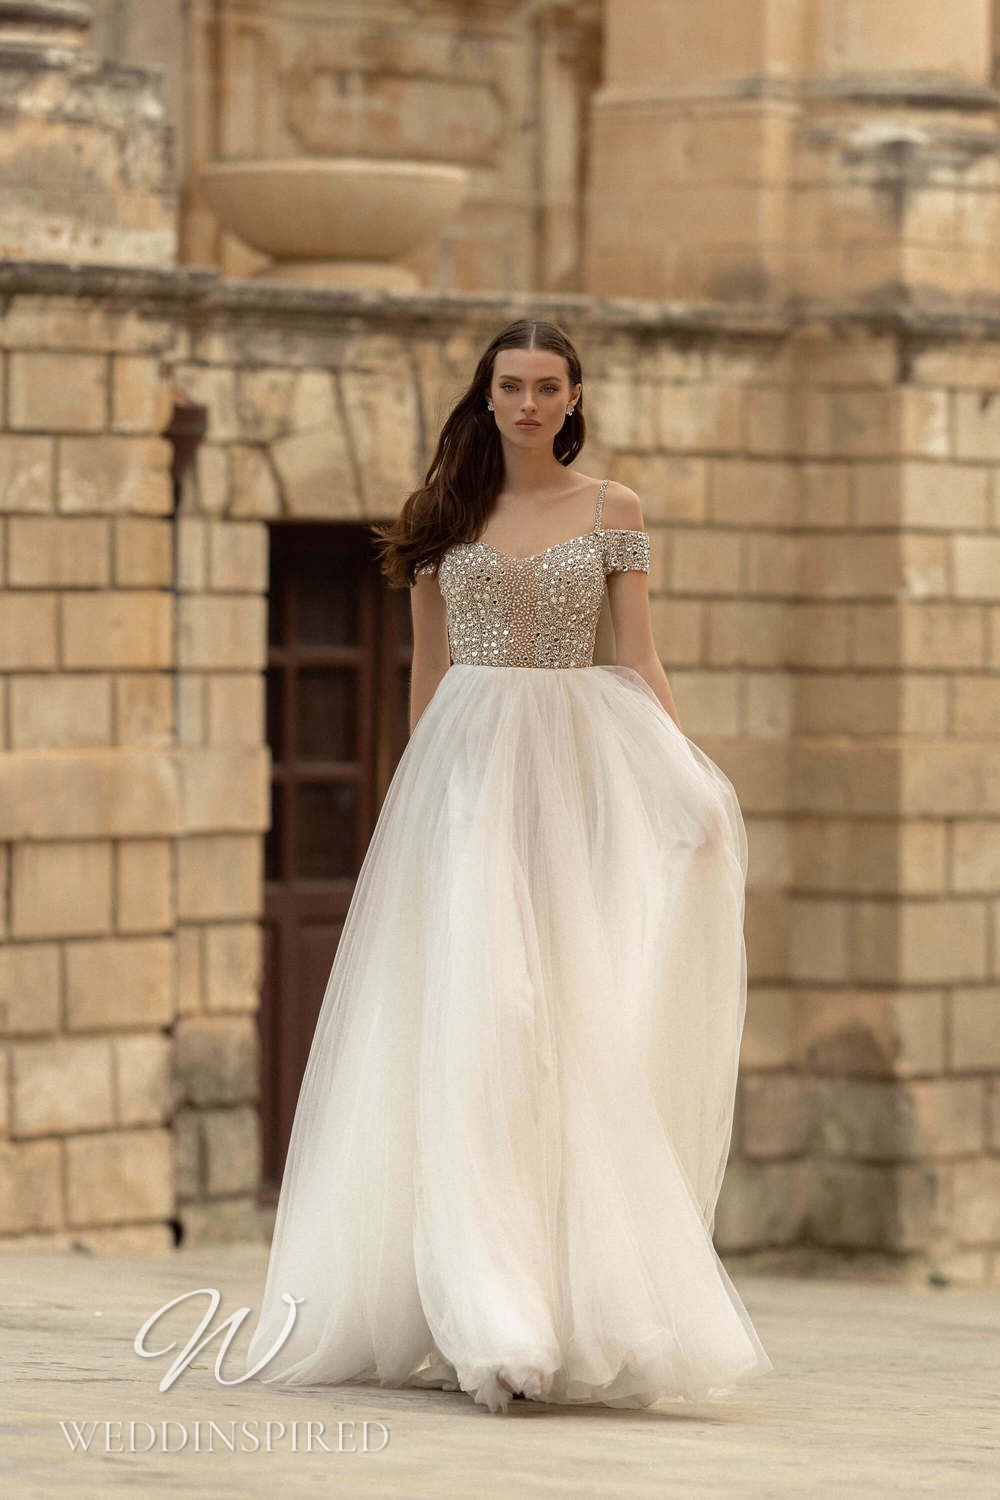 A Lussano 2021 tulle off the shoulder A-line wedding dress